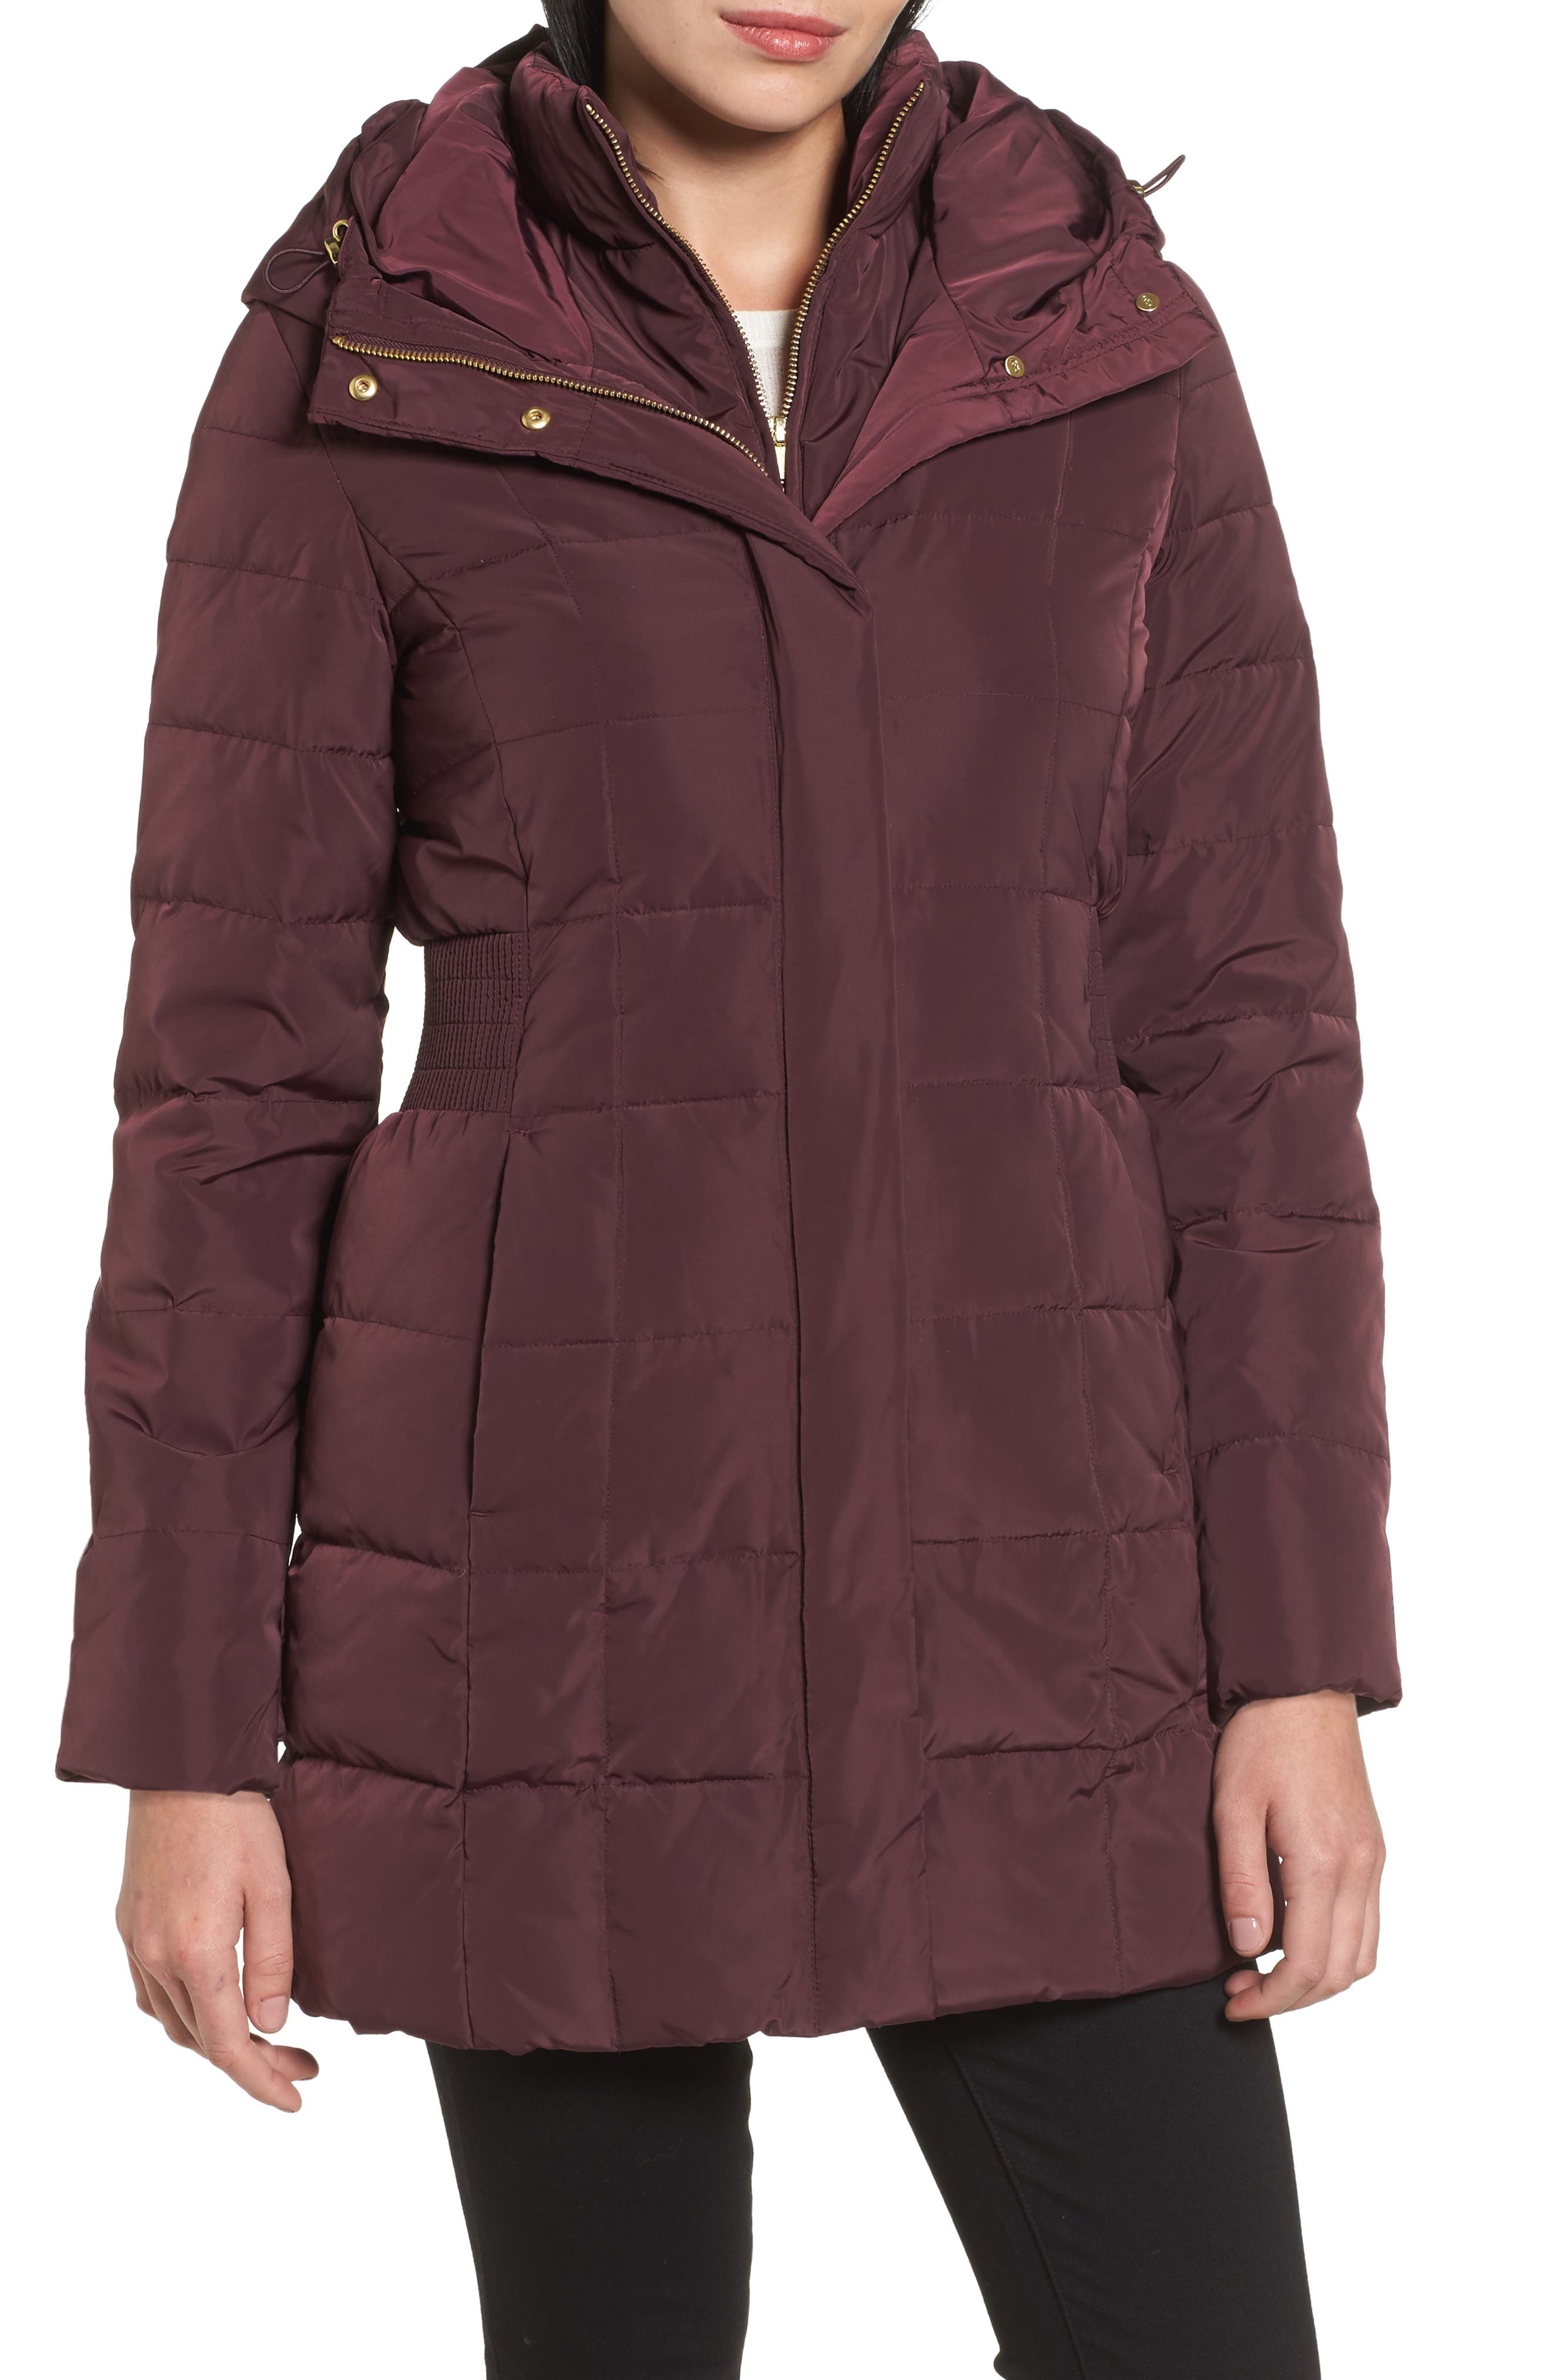 COLE HAAN SIGNATURE Cole Haan Hooded Down & Feather Jacket